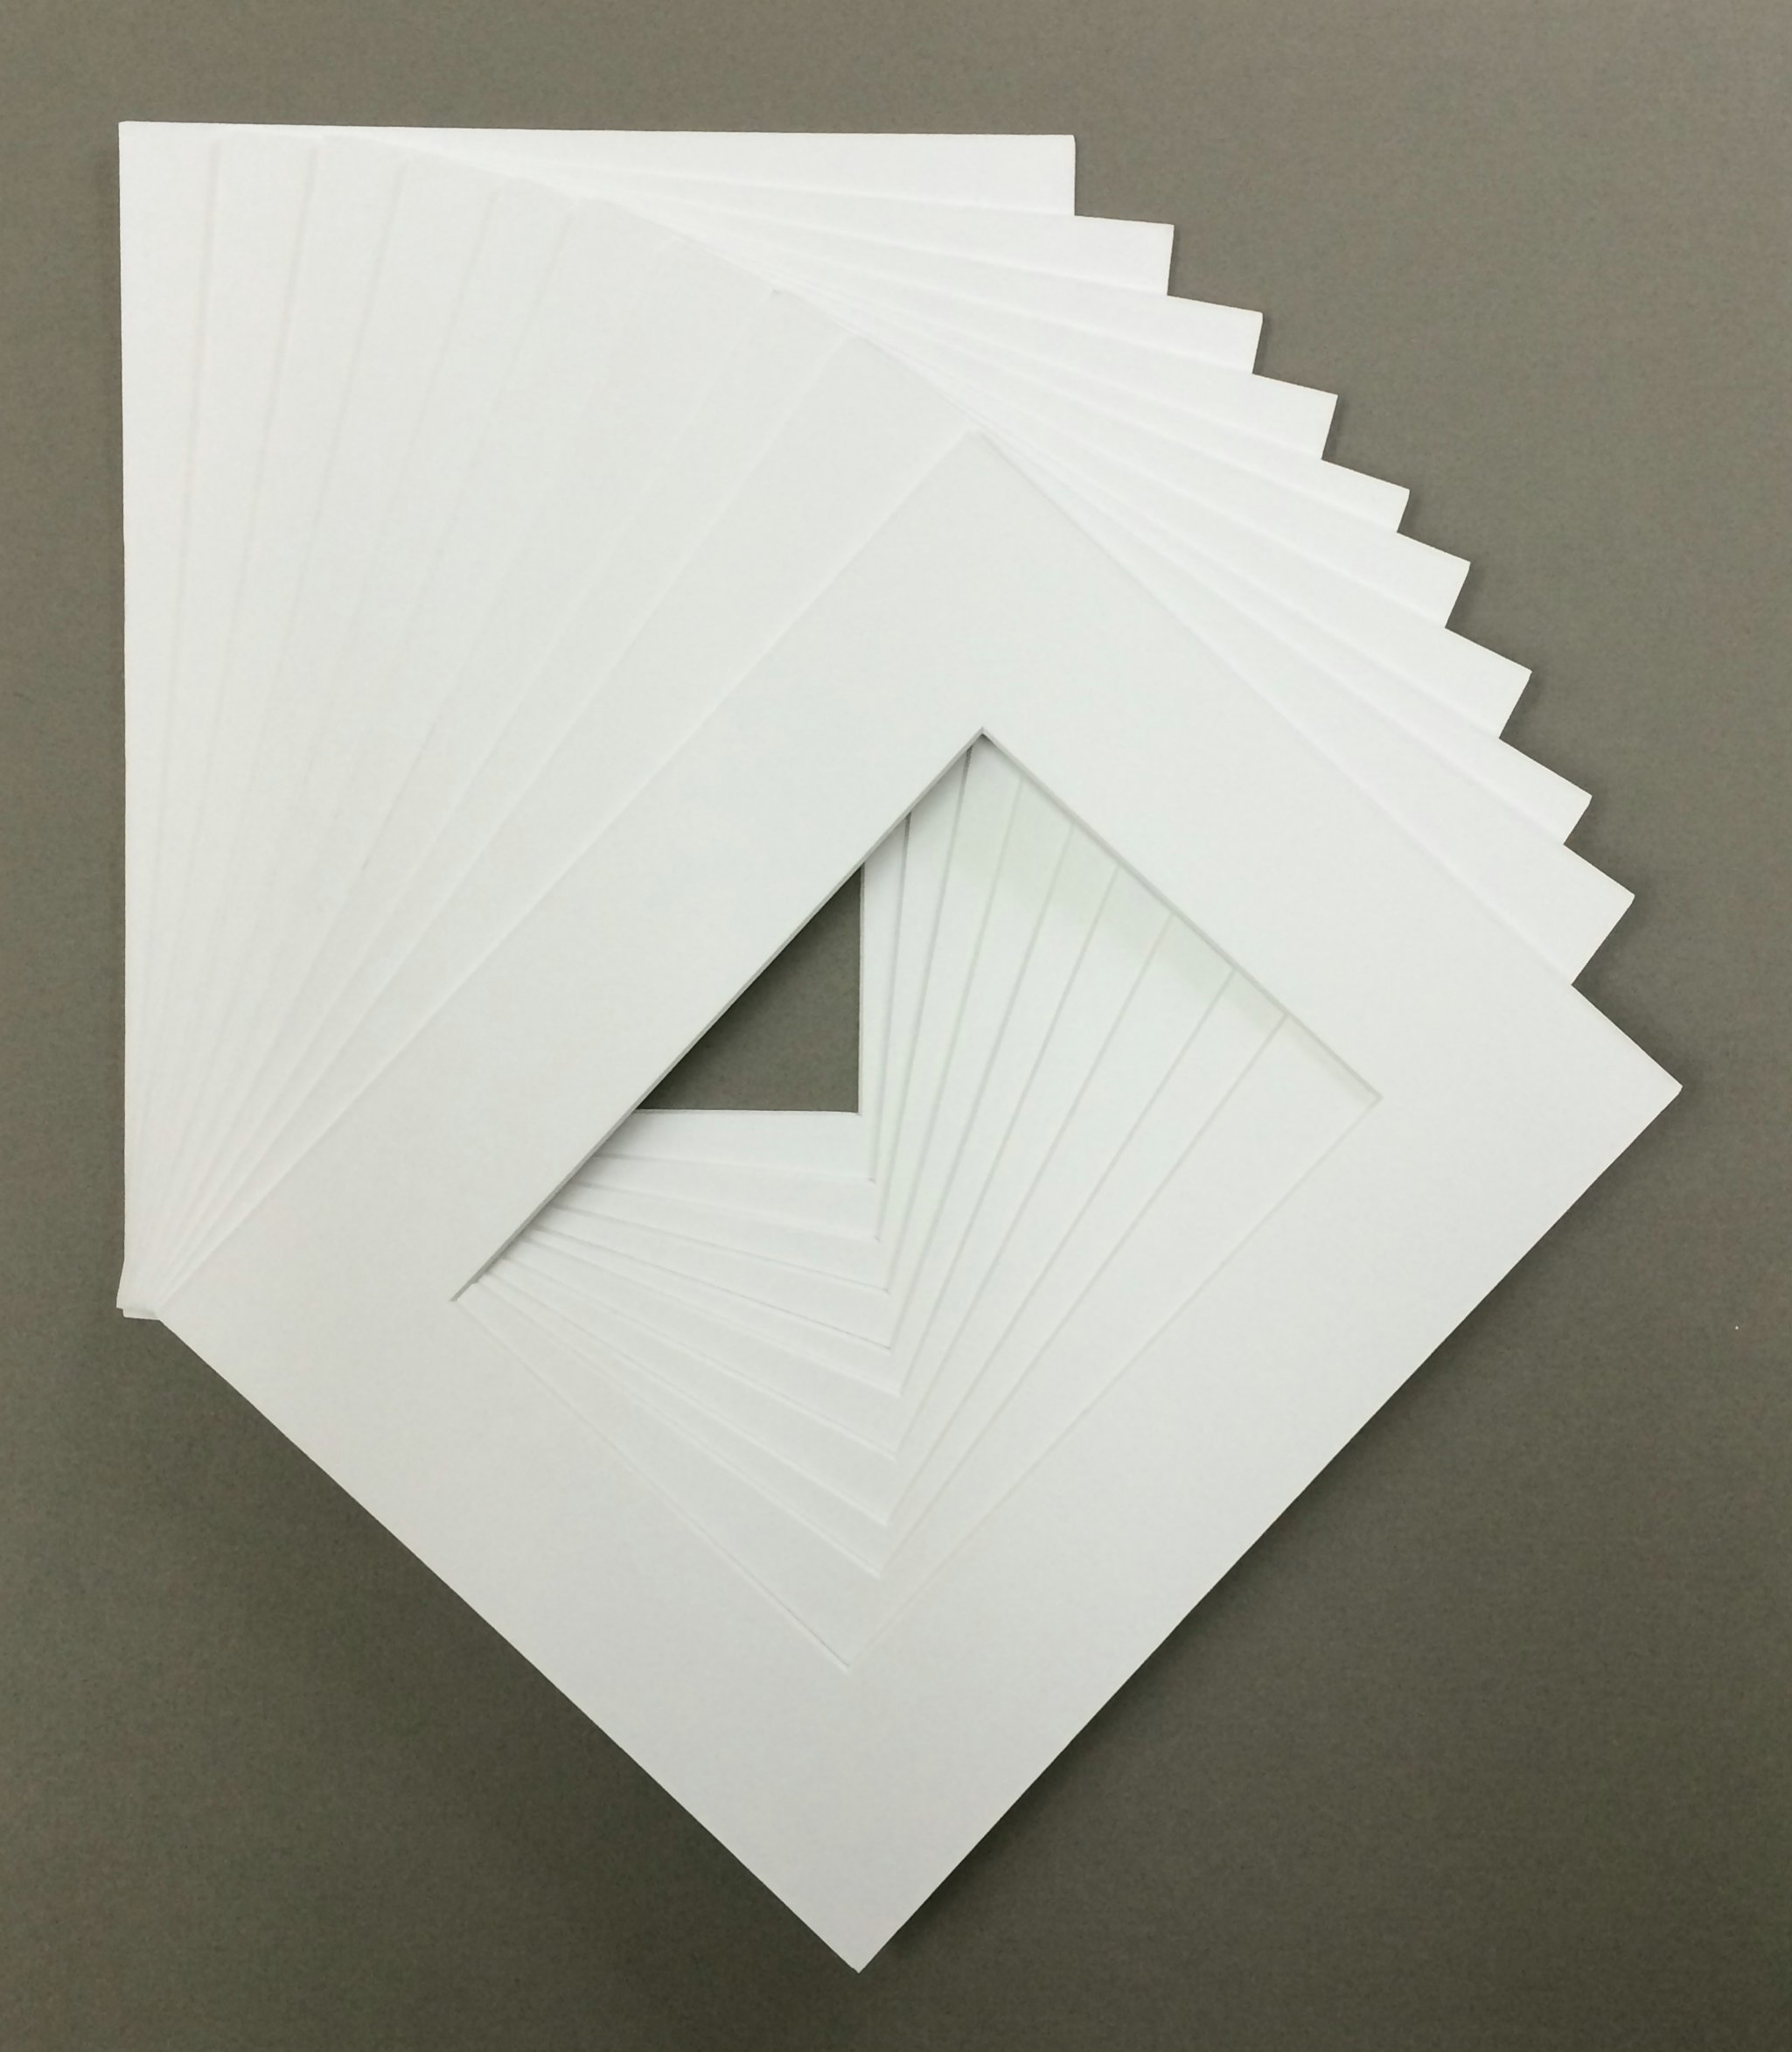 Pack of 10 22x28 White Picture Mats with White Core Bevel Cut for 18x24 Pictures